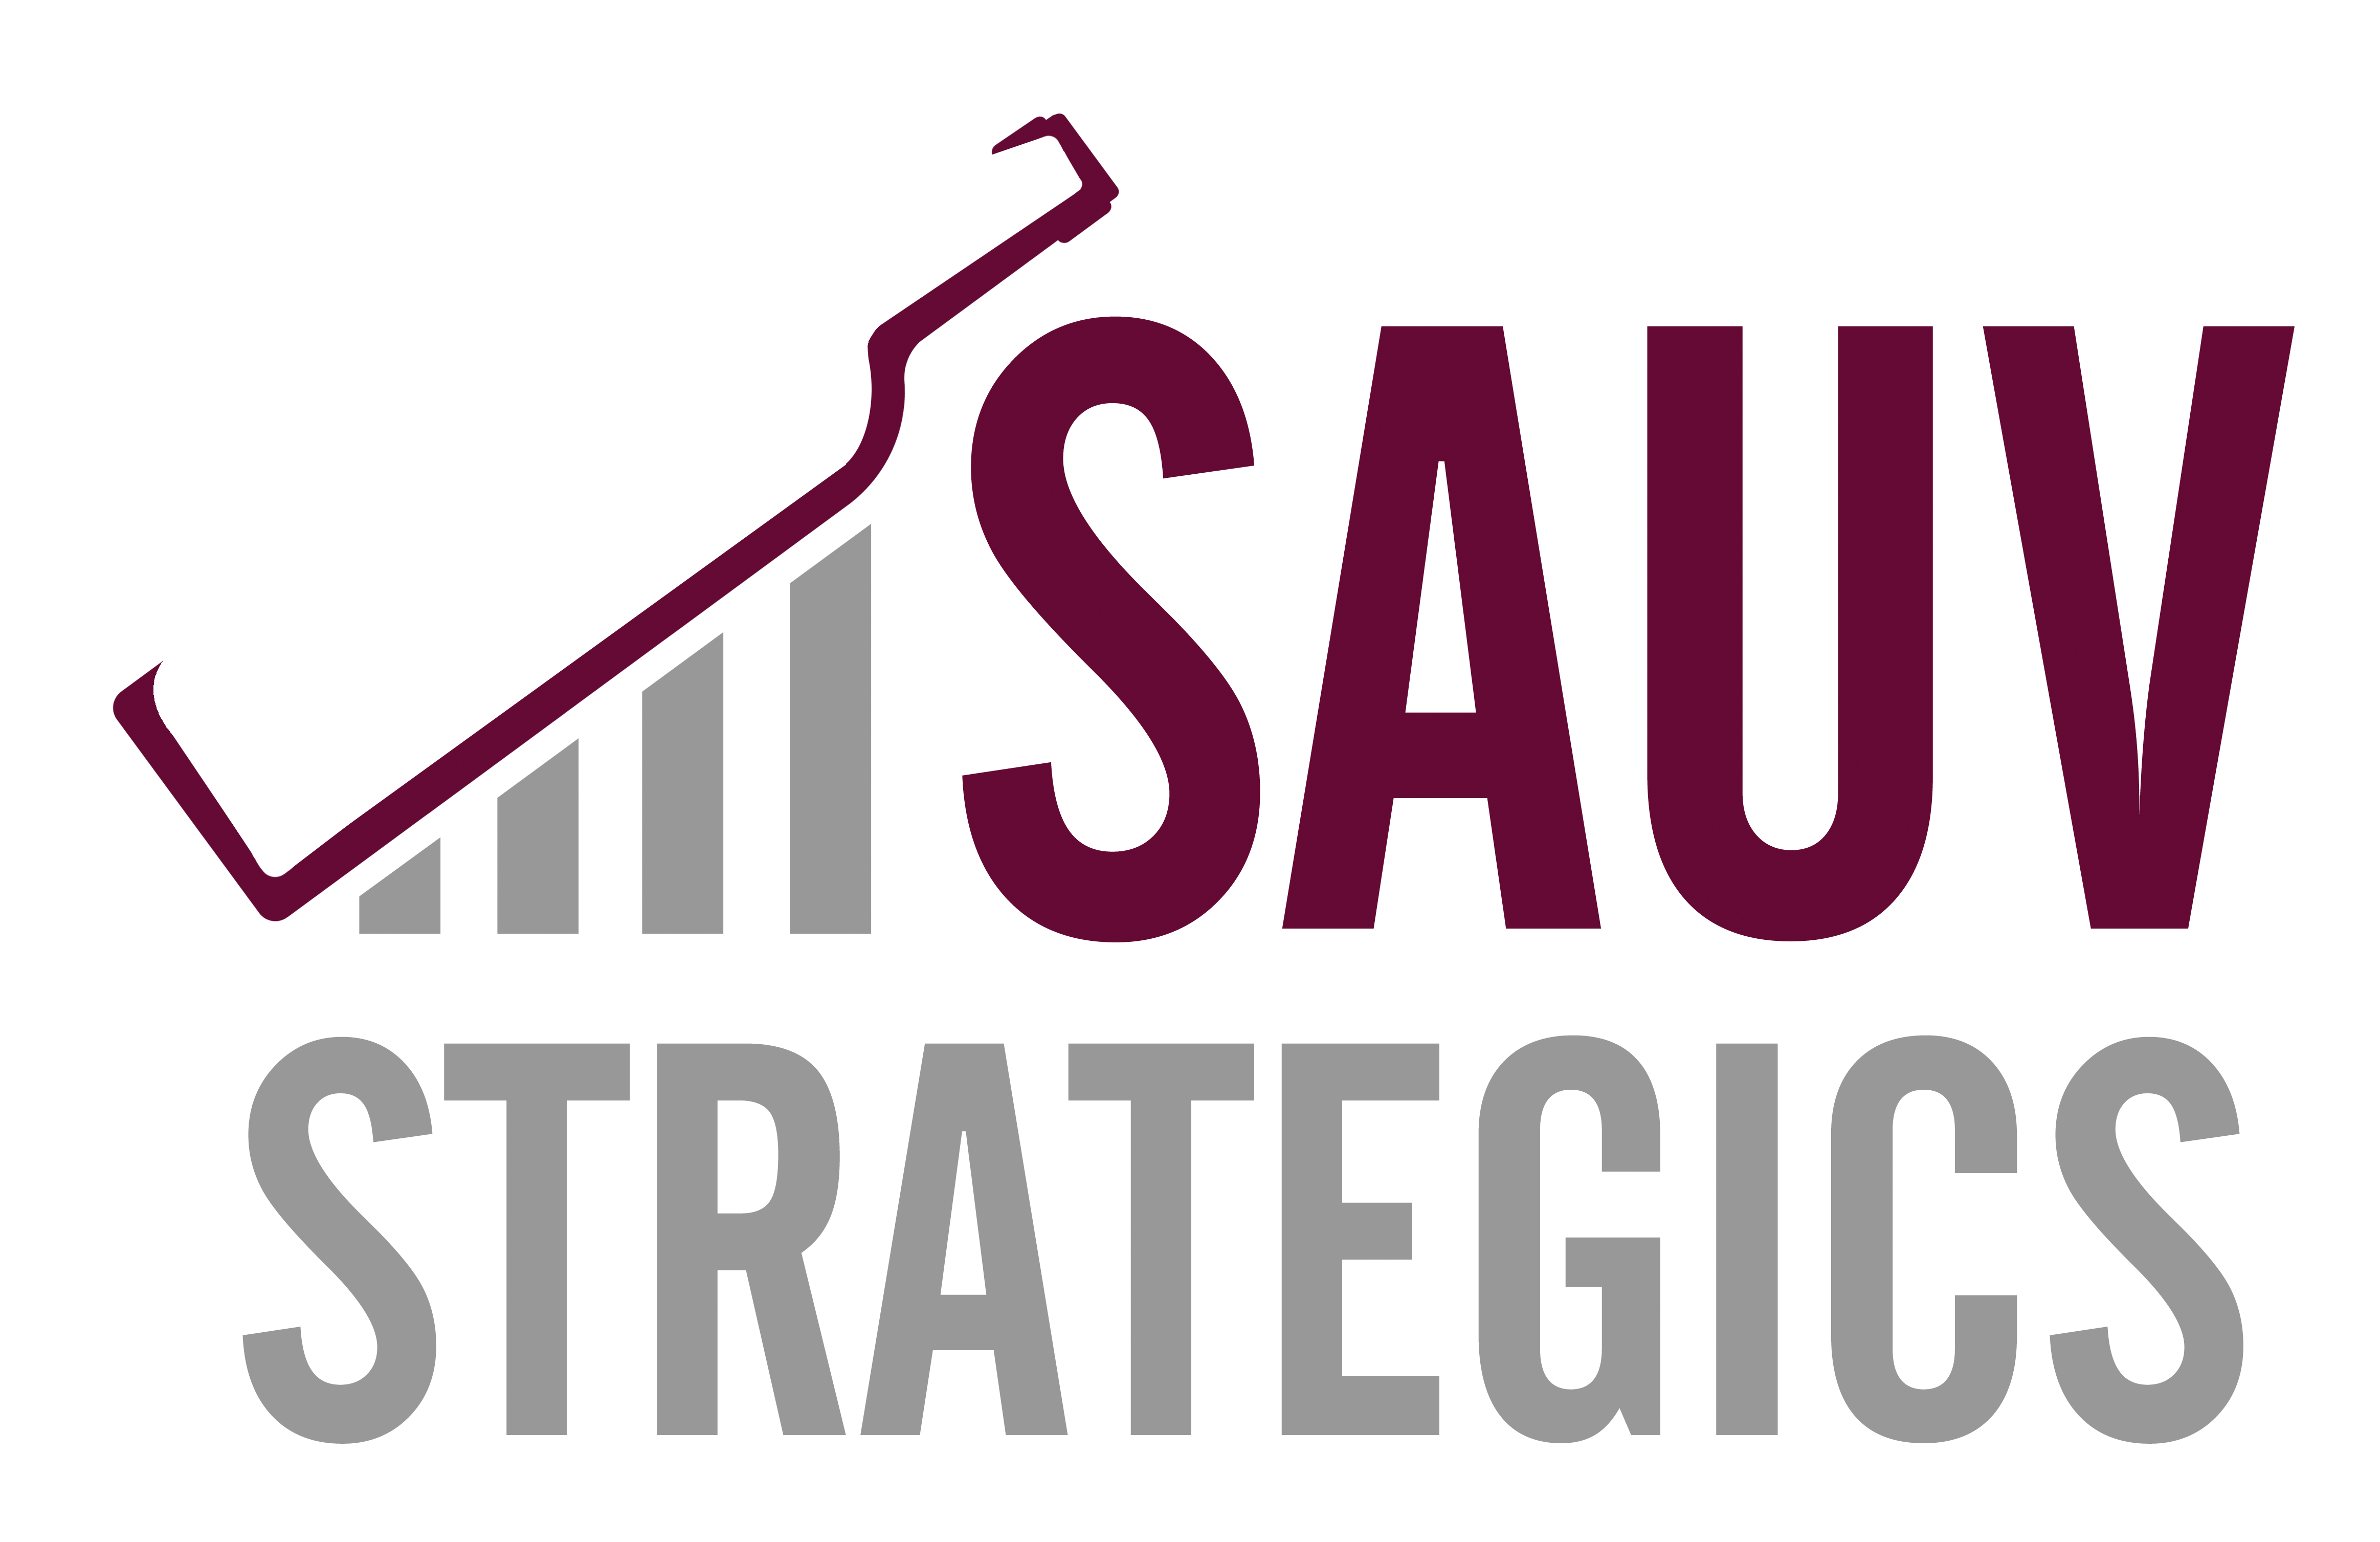 Sauv Strategics